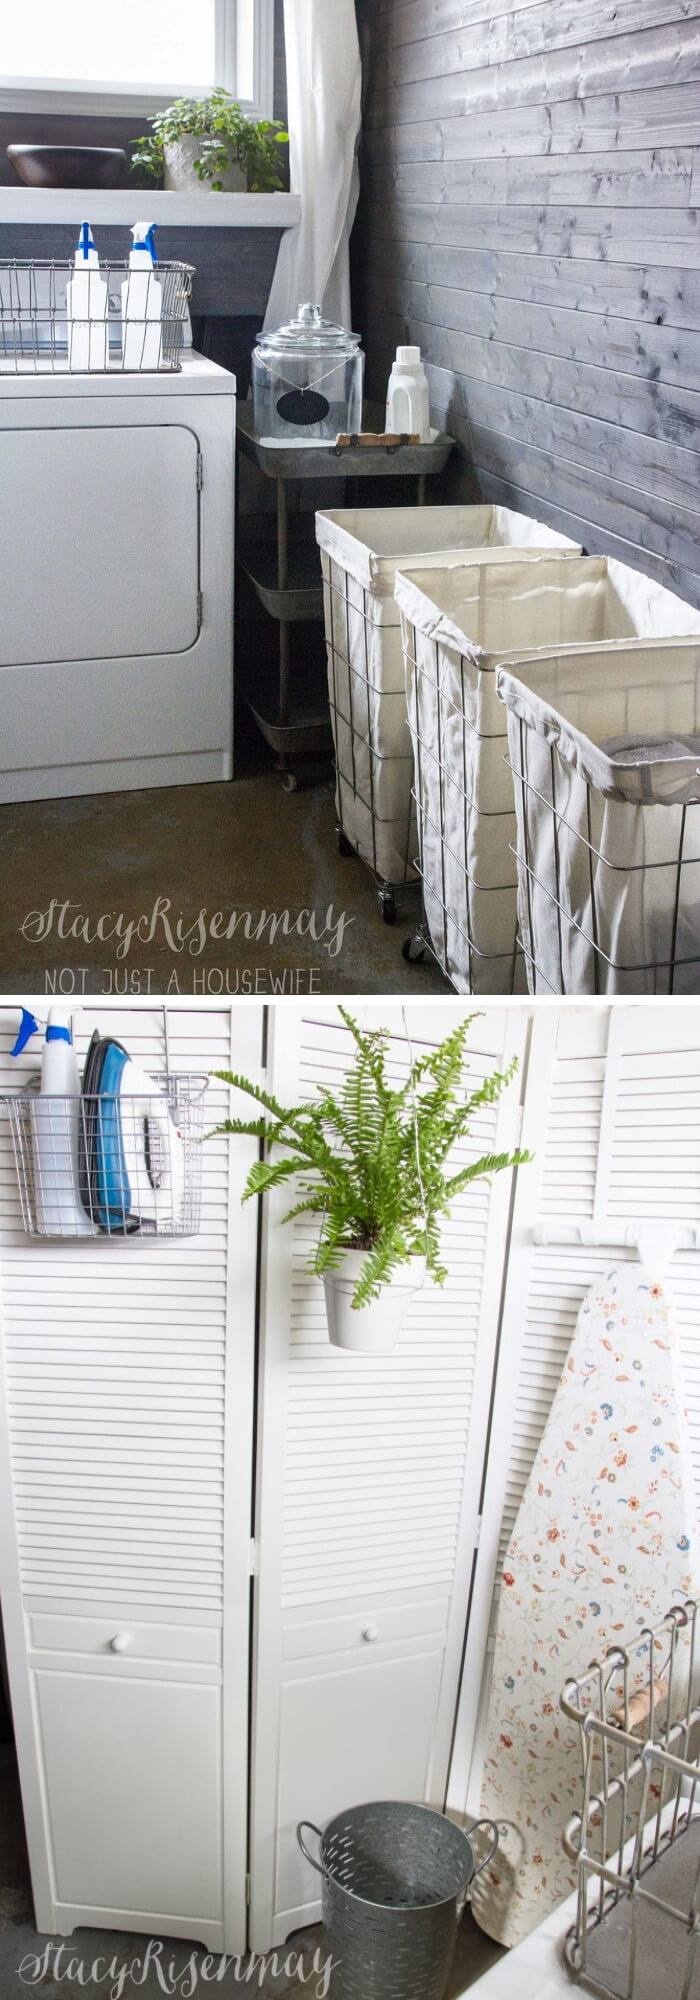 DIY Farmhouse Laundry Room Ideas: Solving problem in laundry room with rolling laundry cart